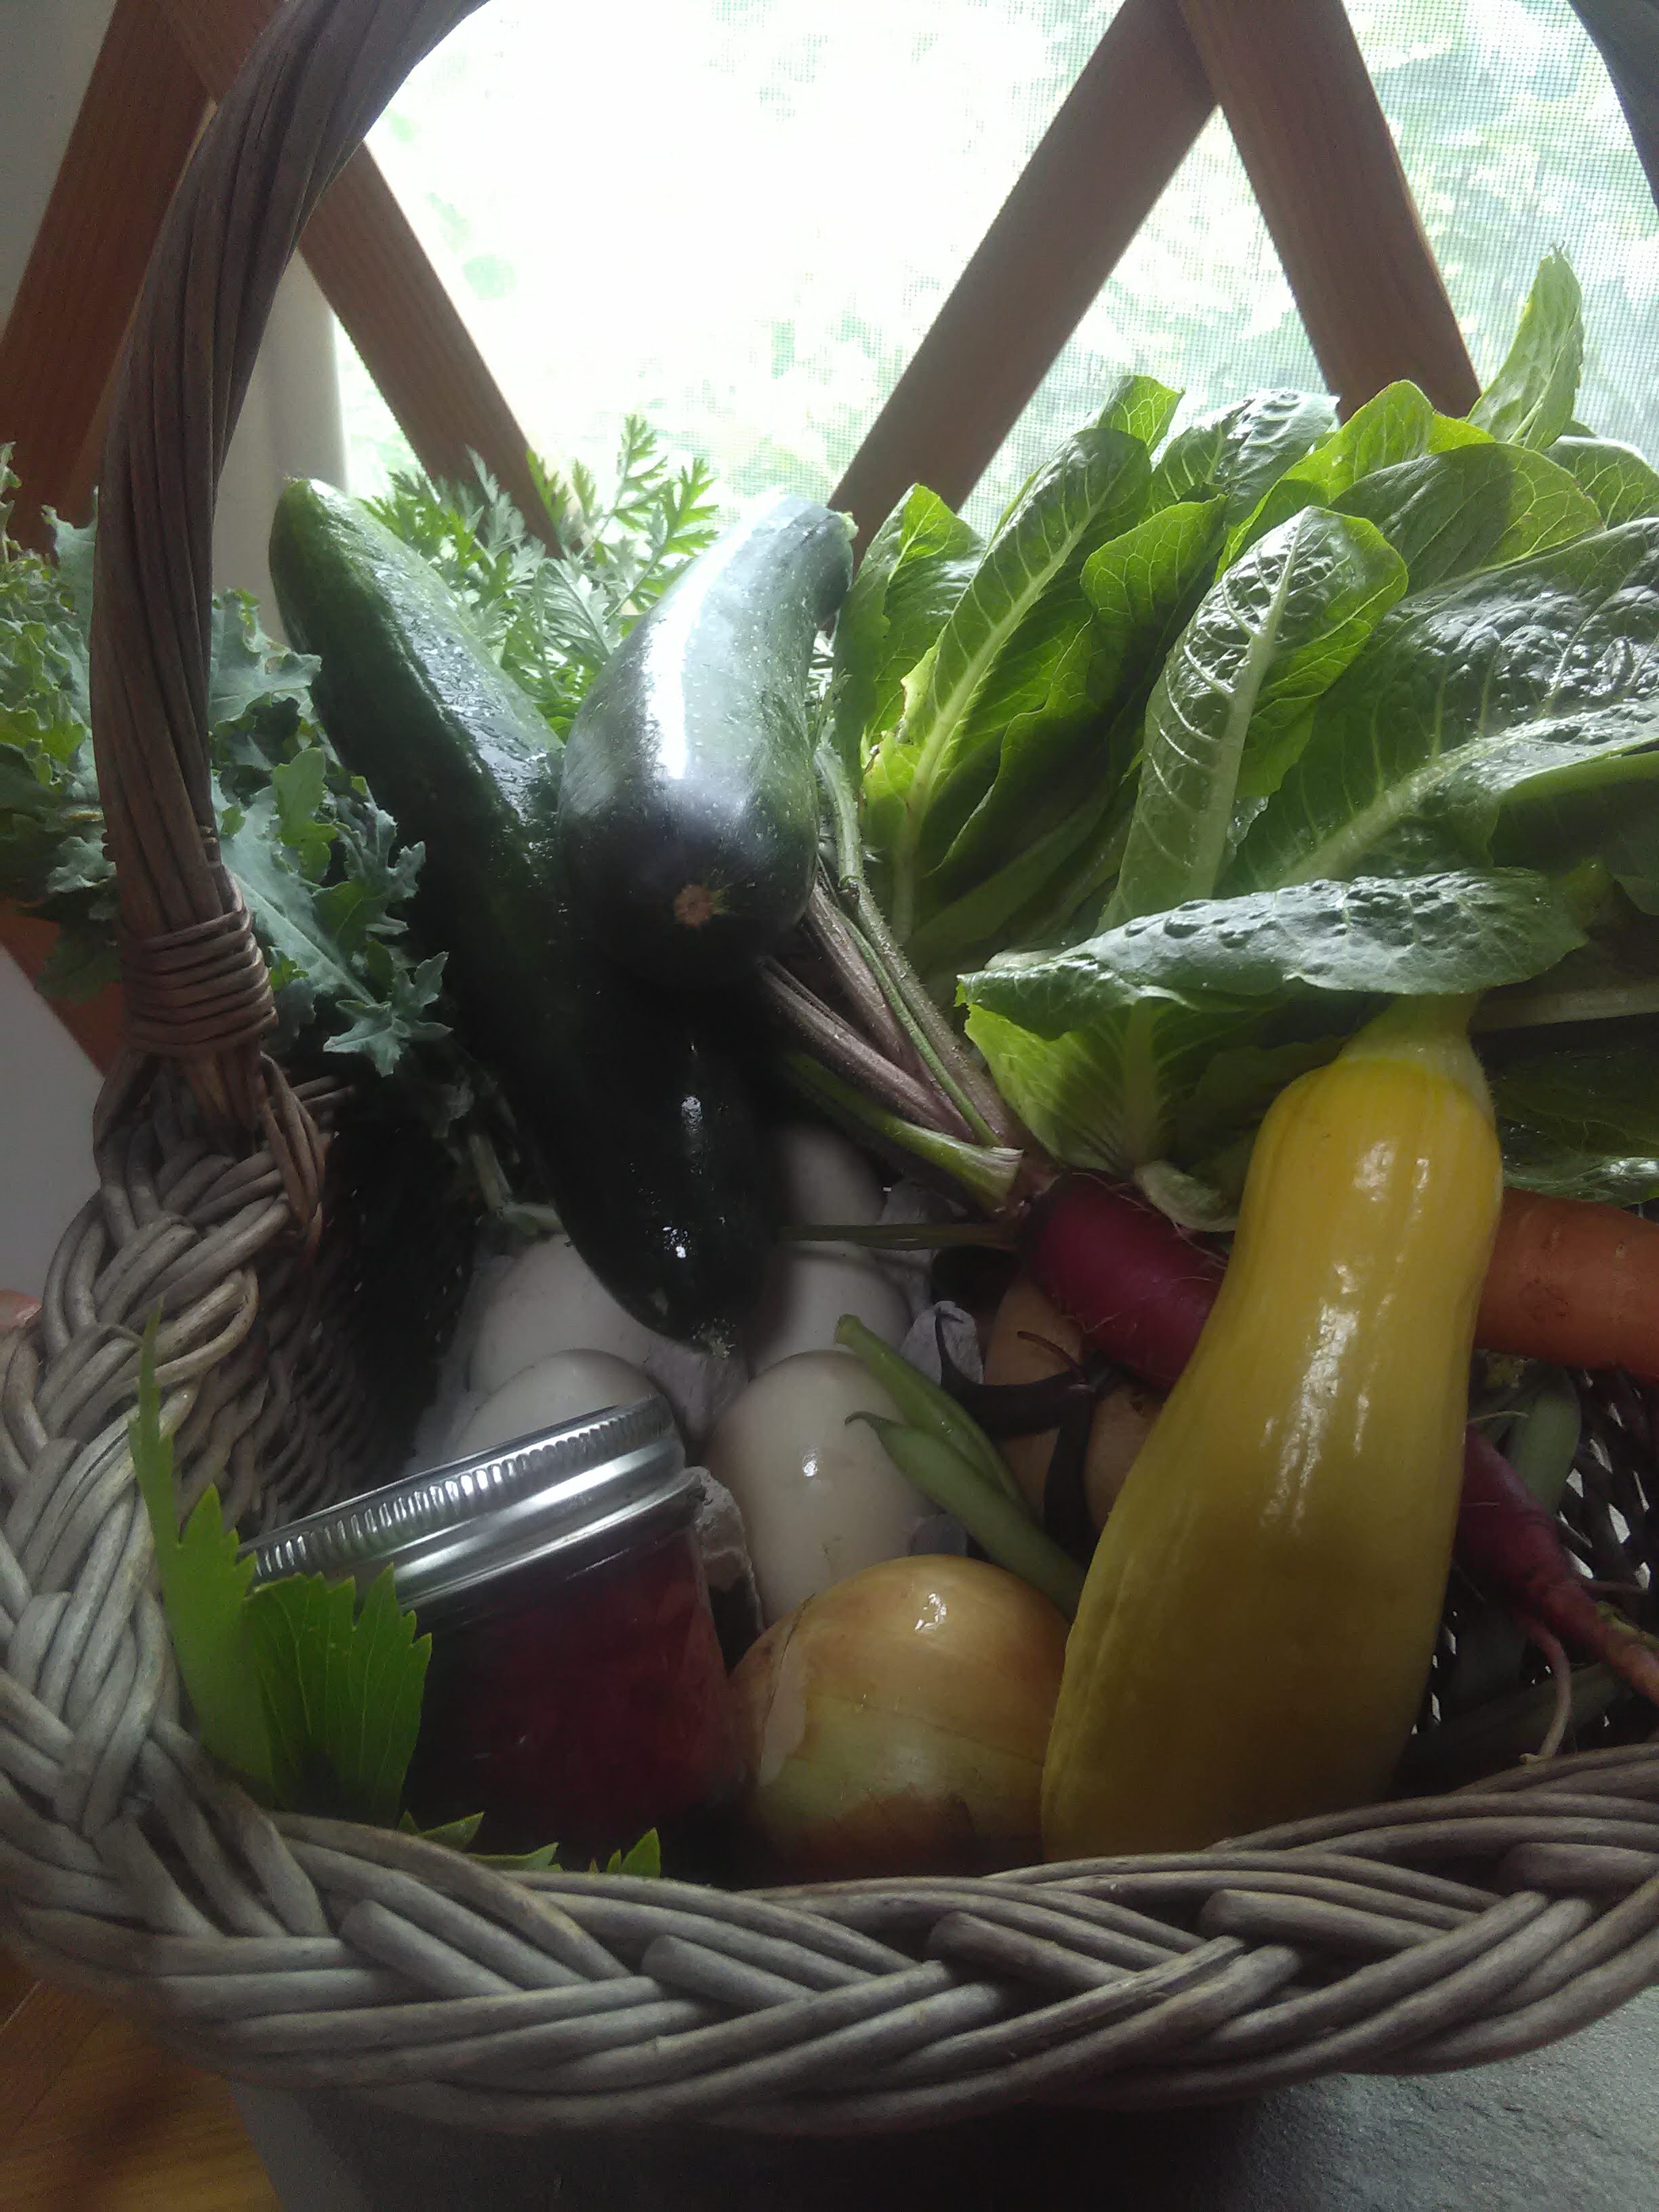 A full basket of bounty, thanks to the Earth and hard work.